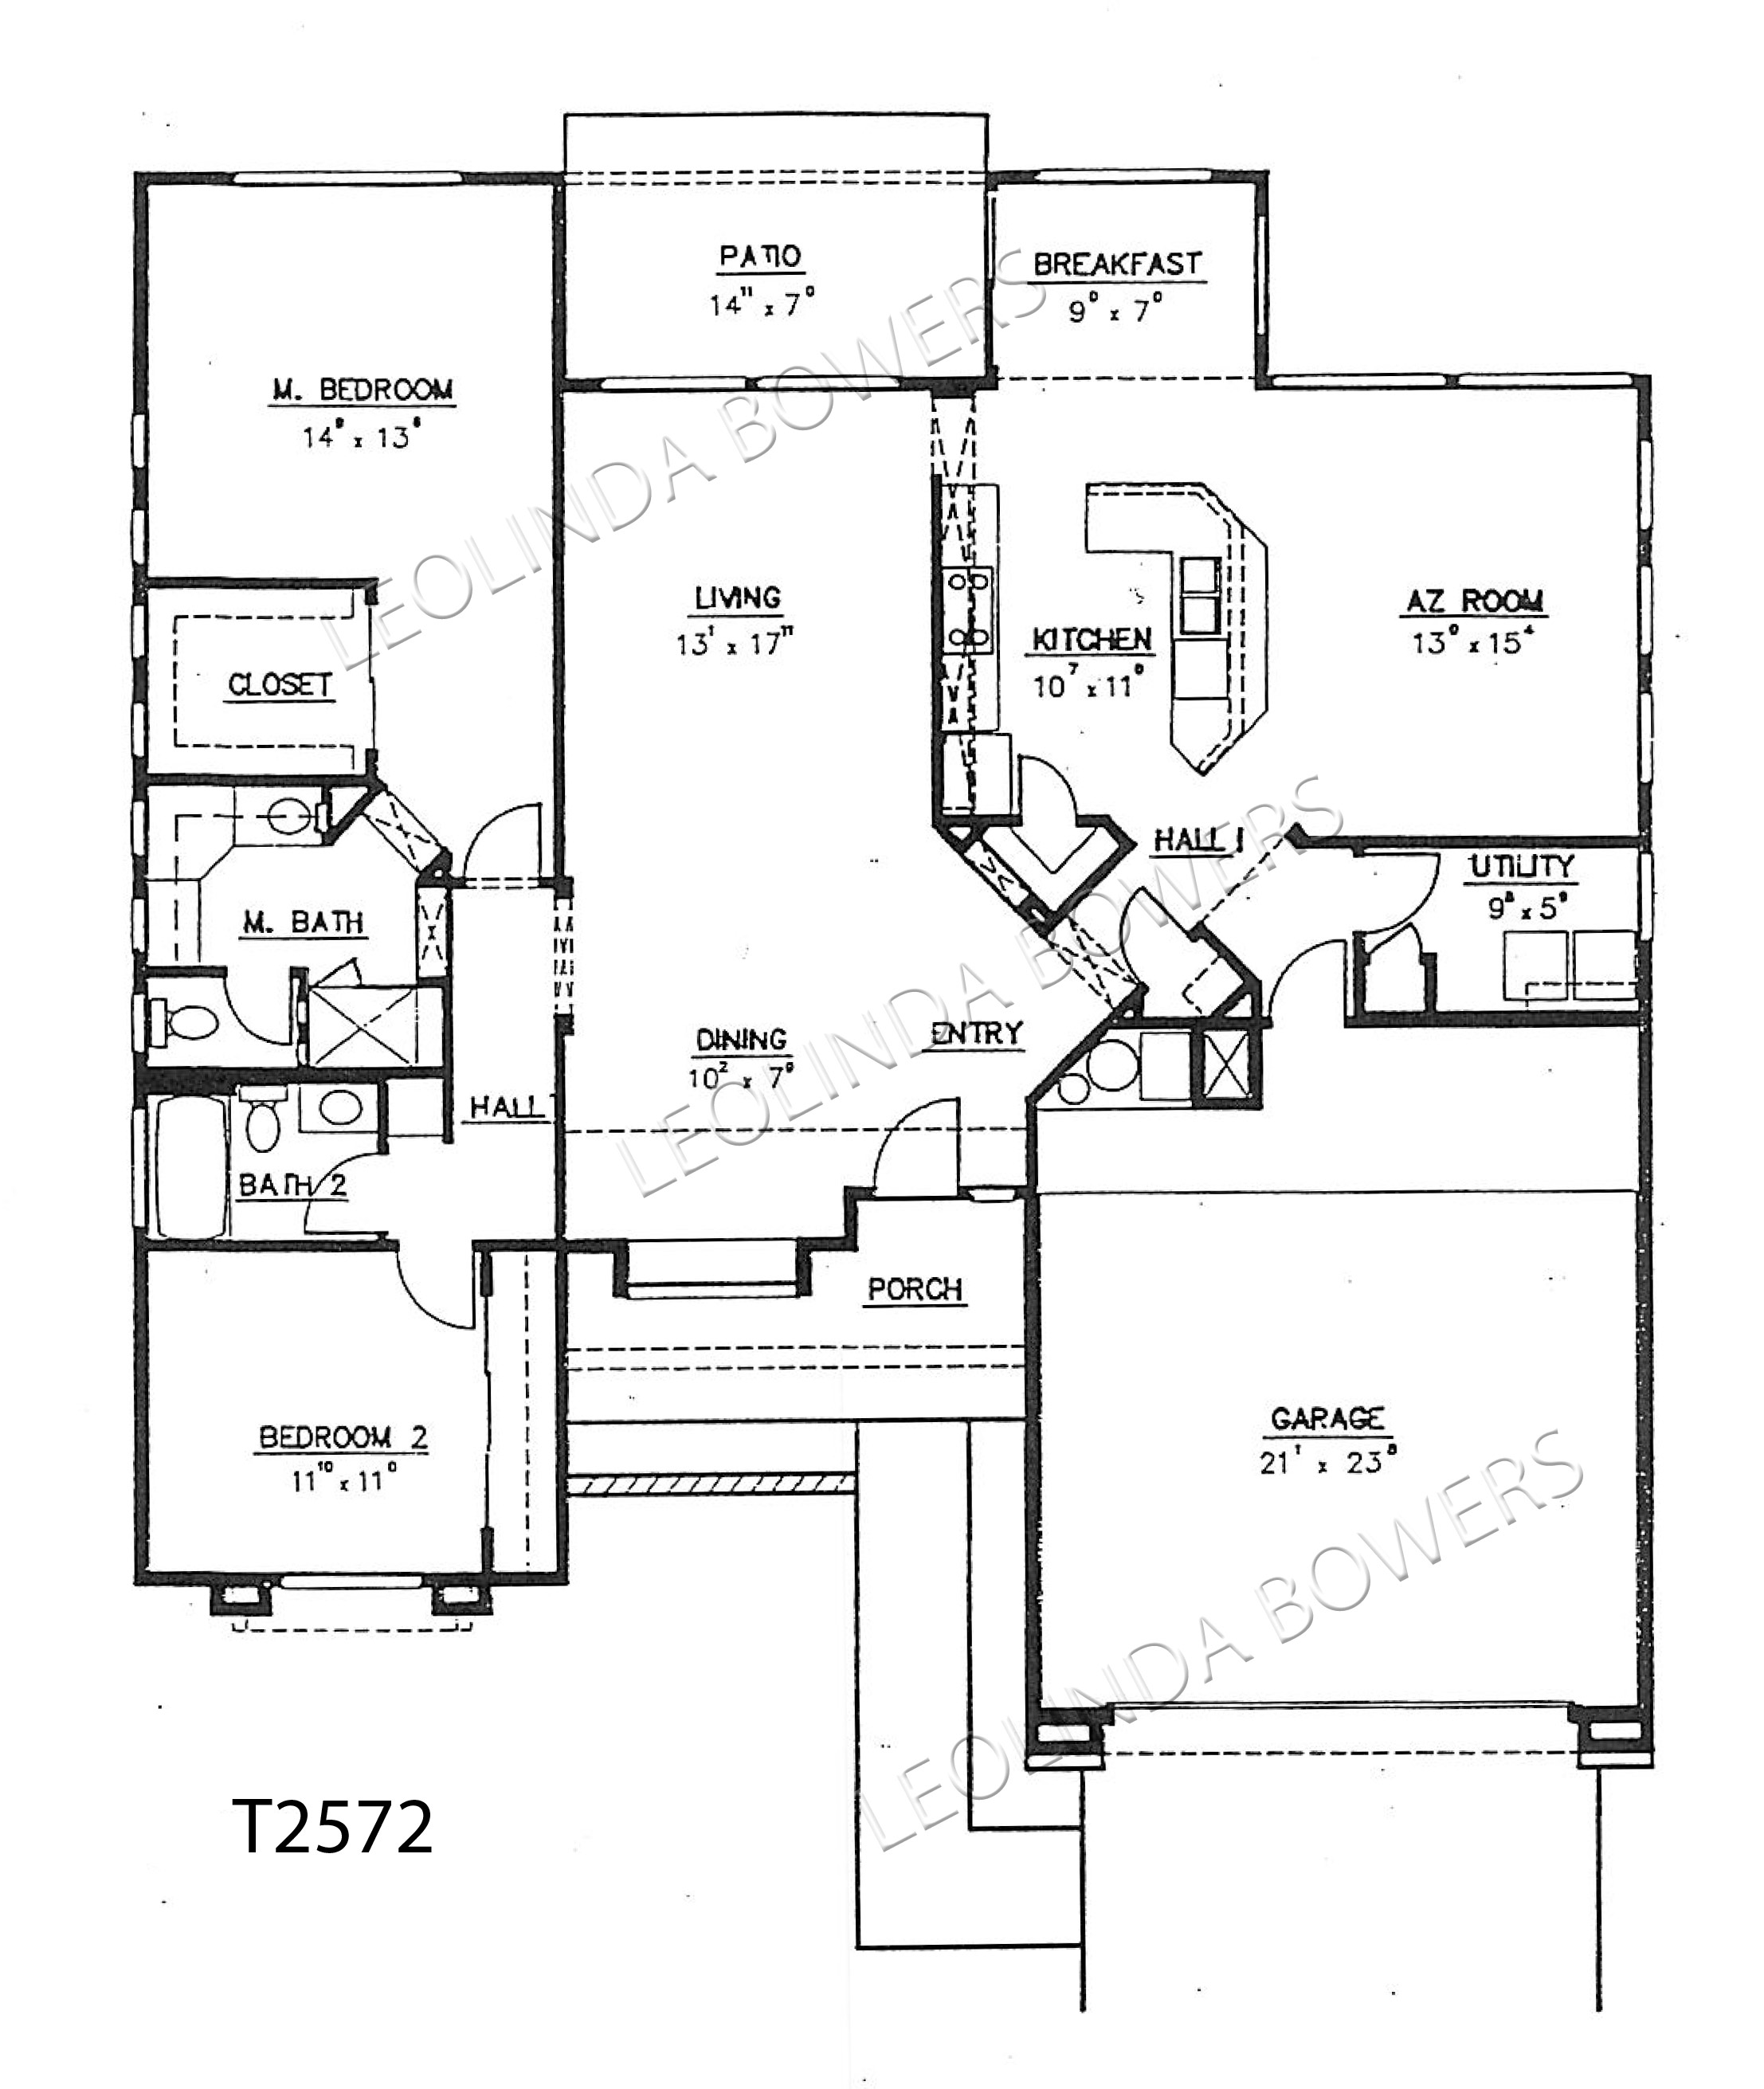 Sun City West T2572 Royale model floor plan